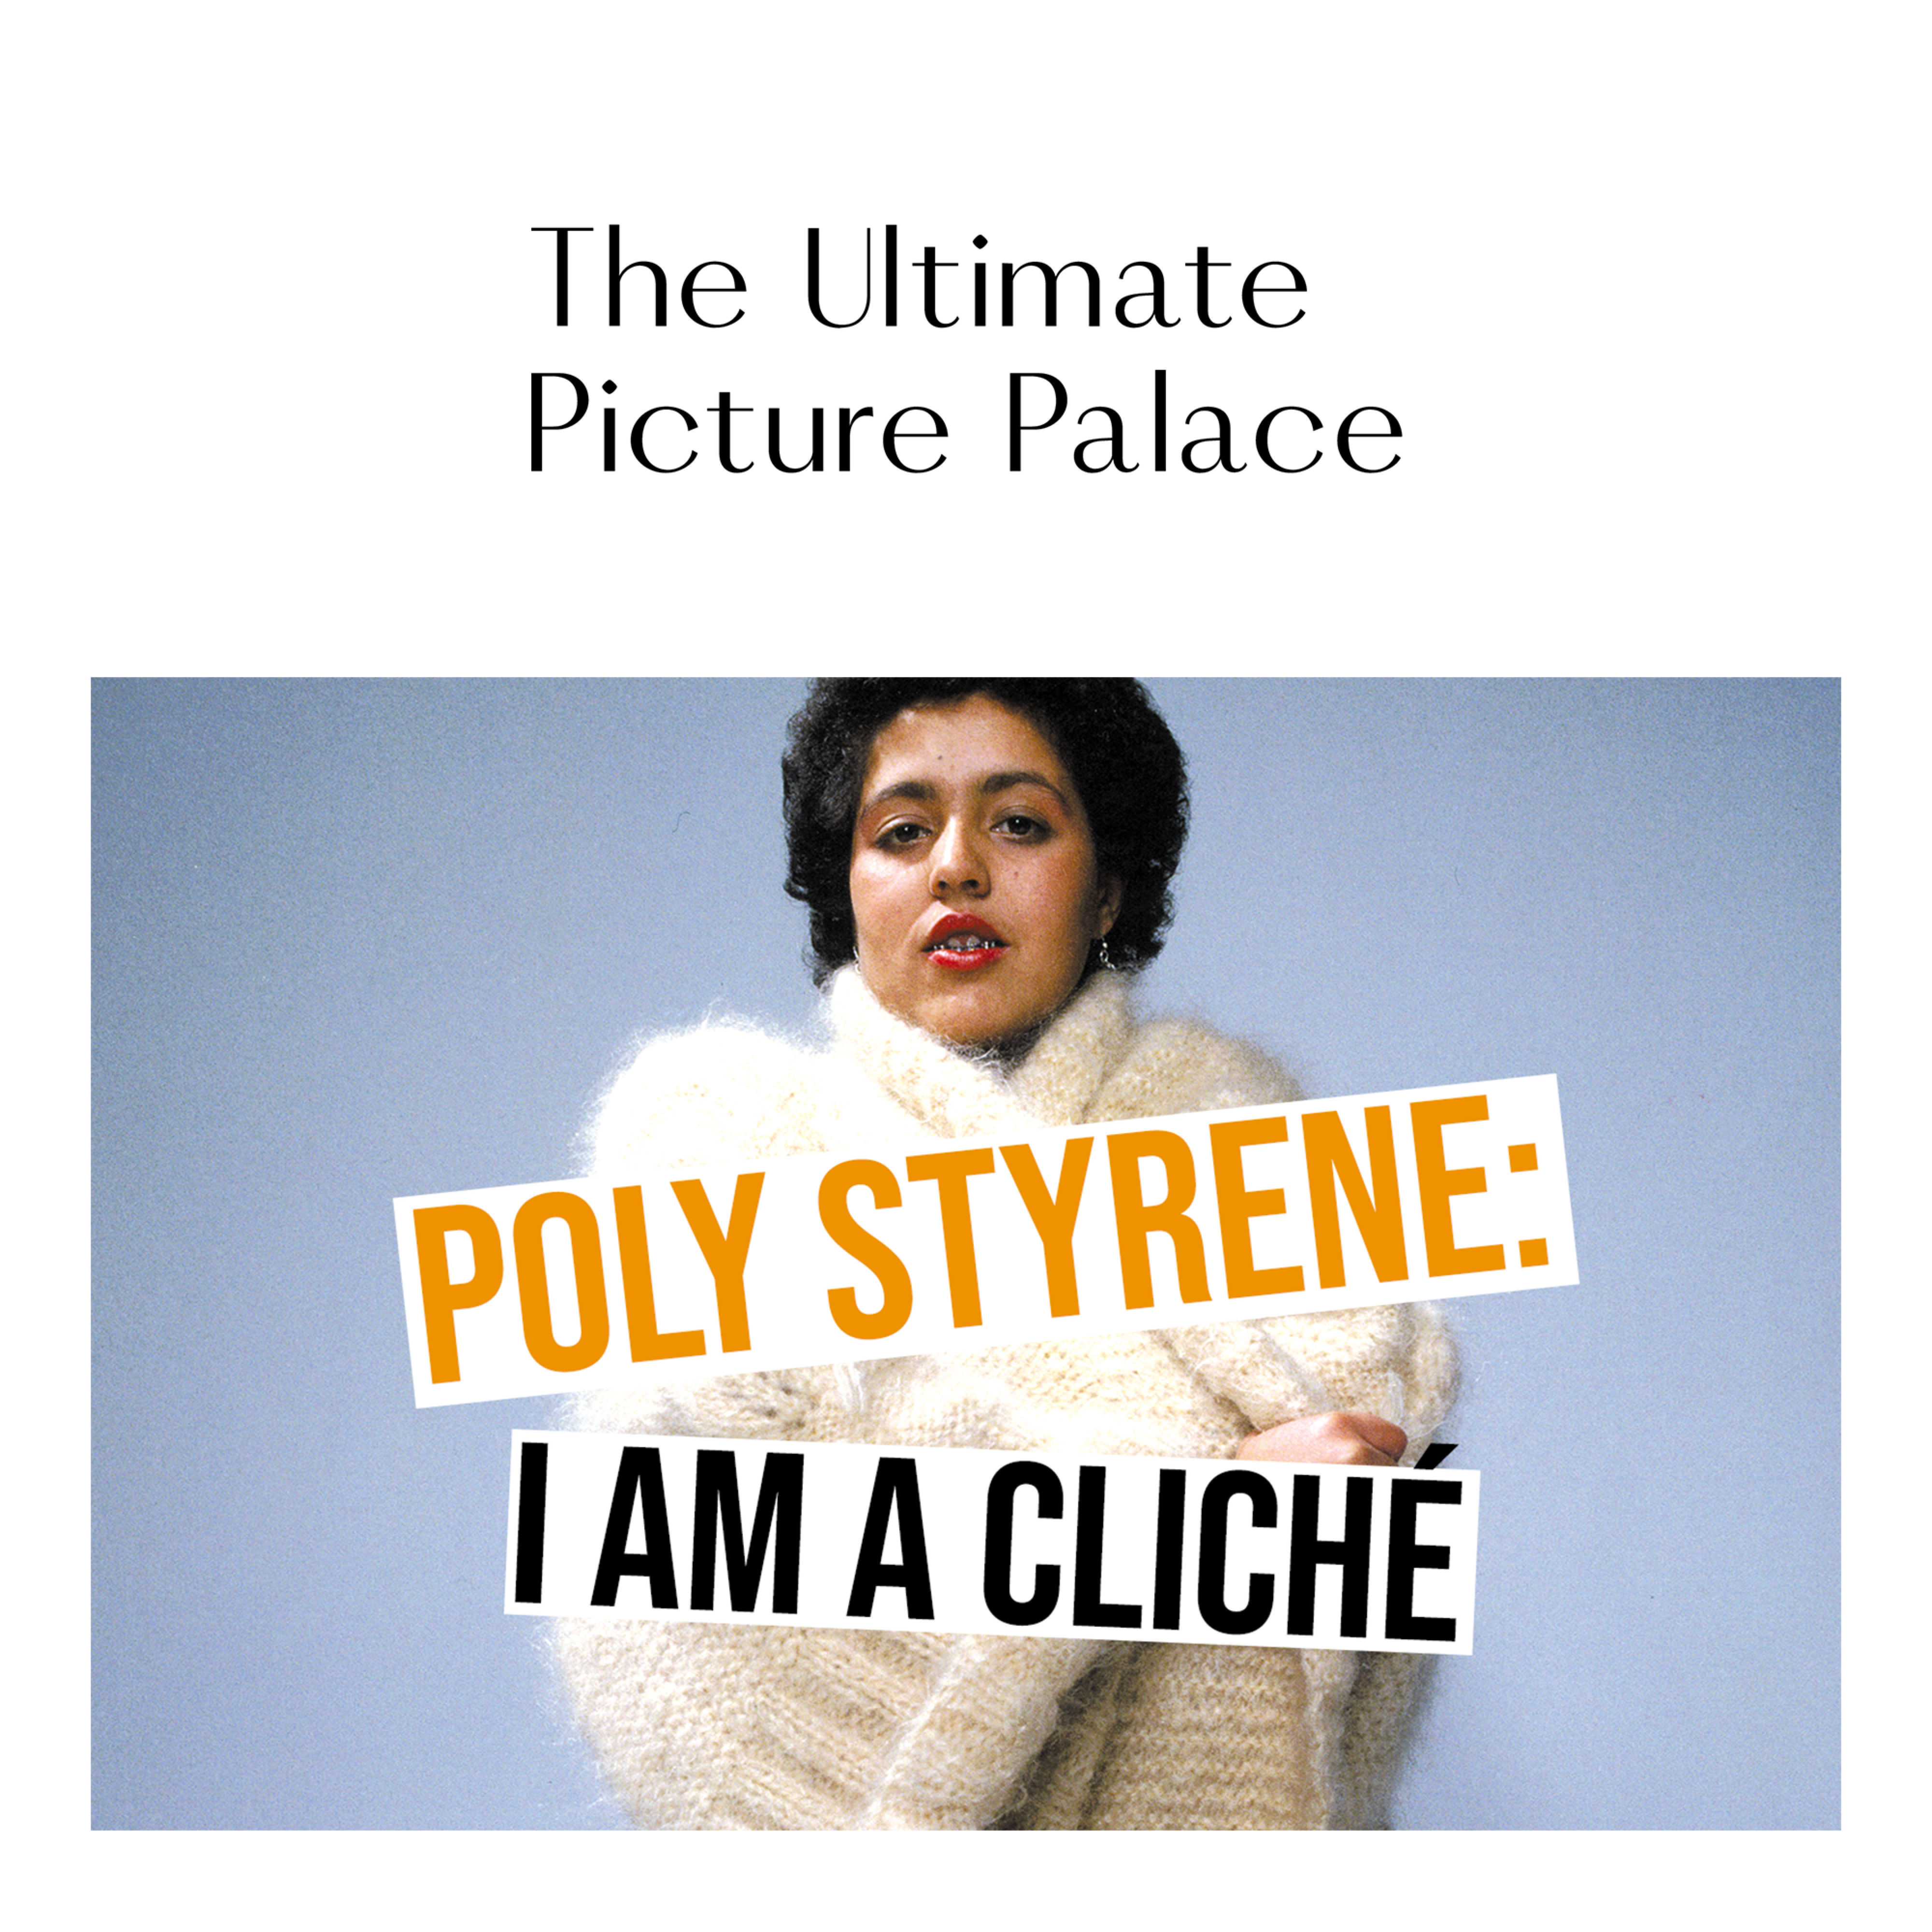 Poly Styrene: I Am a Cliché at Ultimate Picture Palace